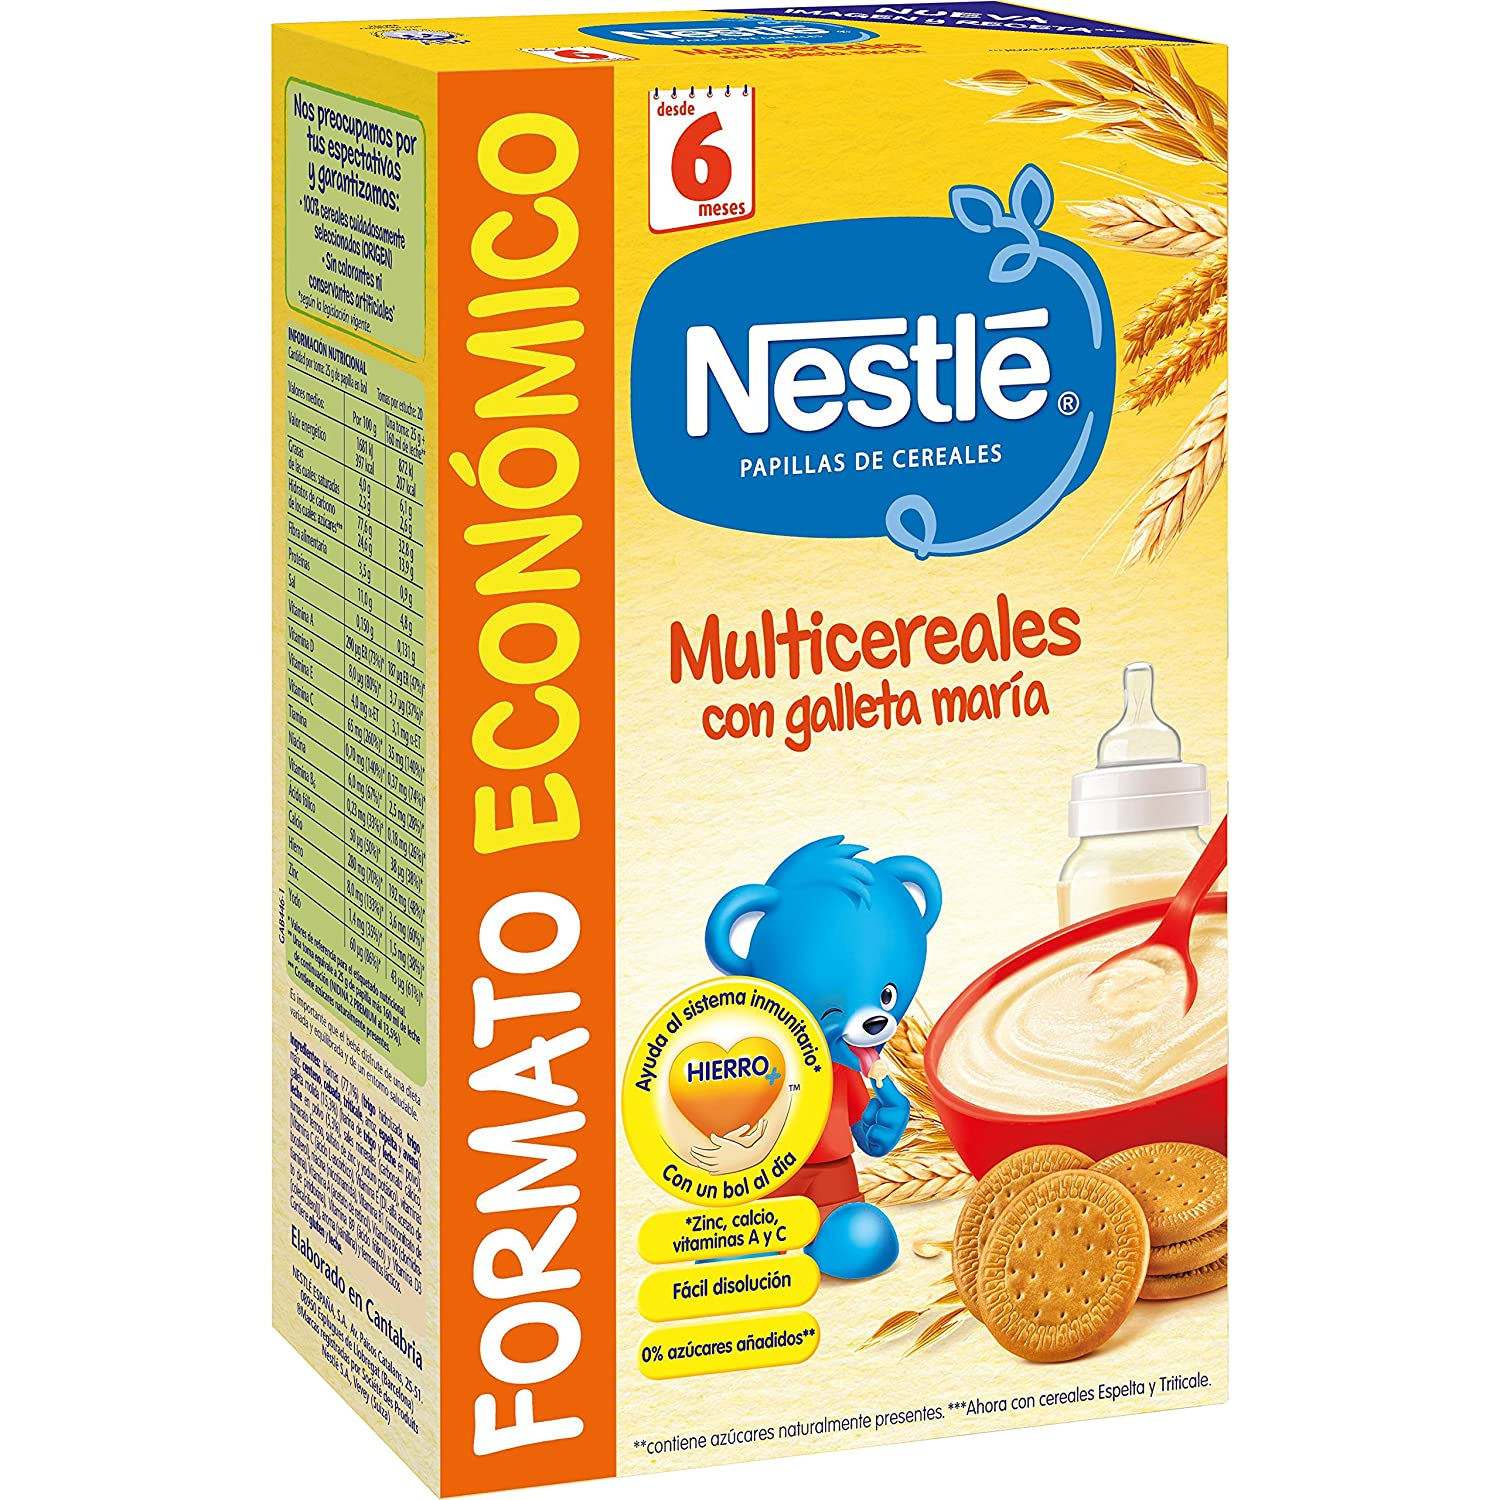 Nestlé Multicereales con Galleta María - 500 gr: Amazon.es: Amazon Pantry